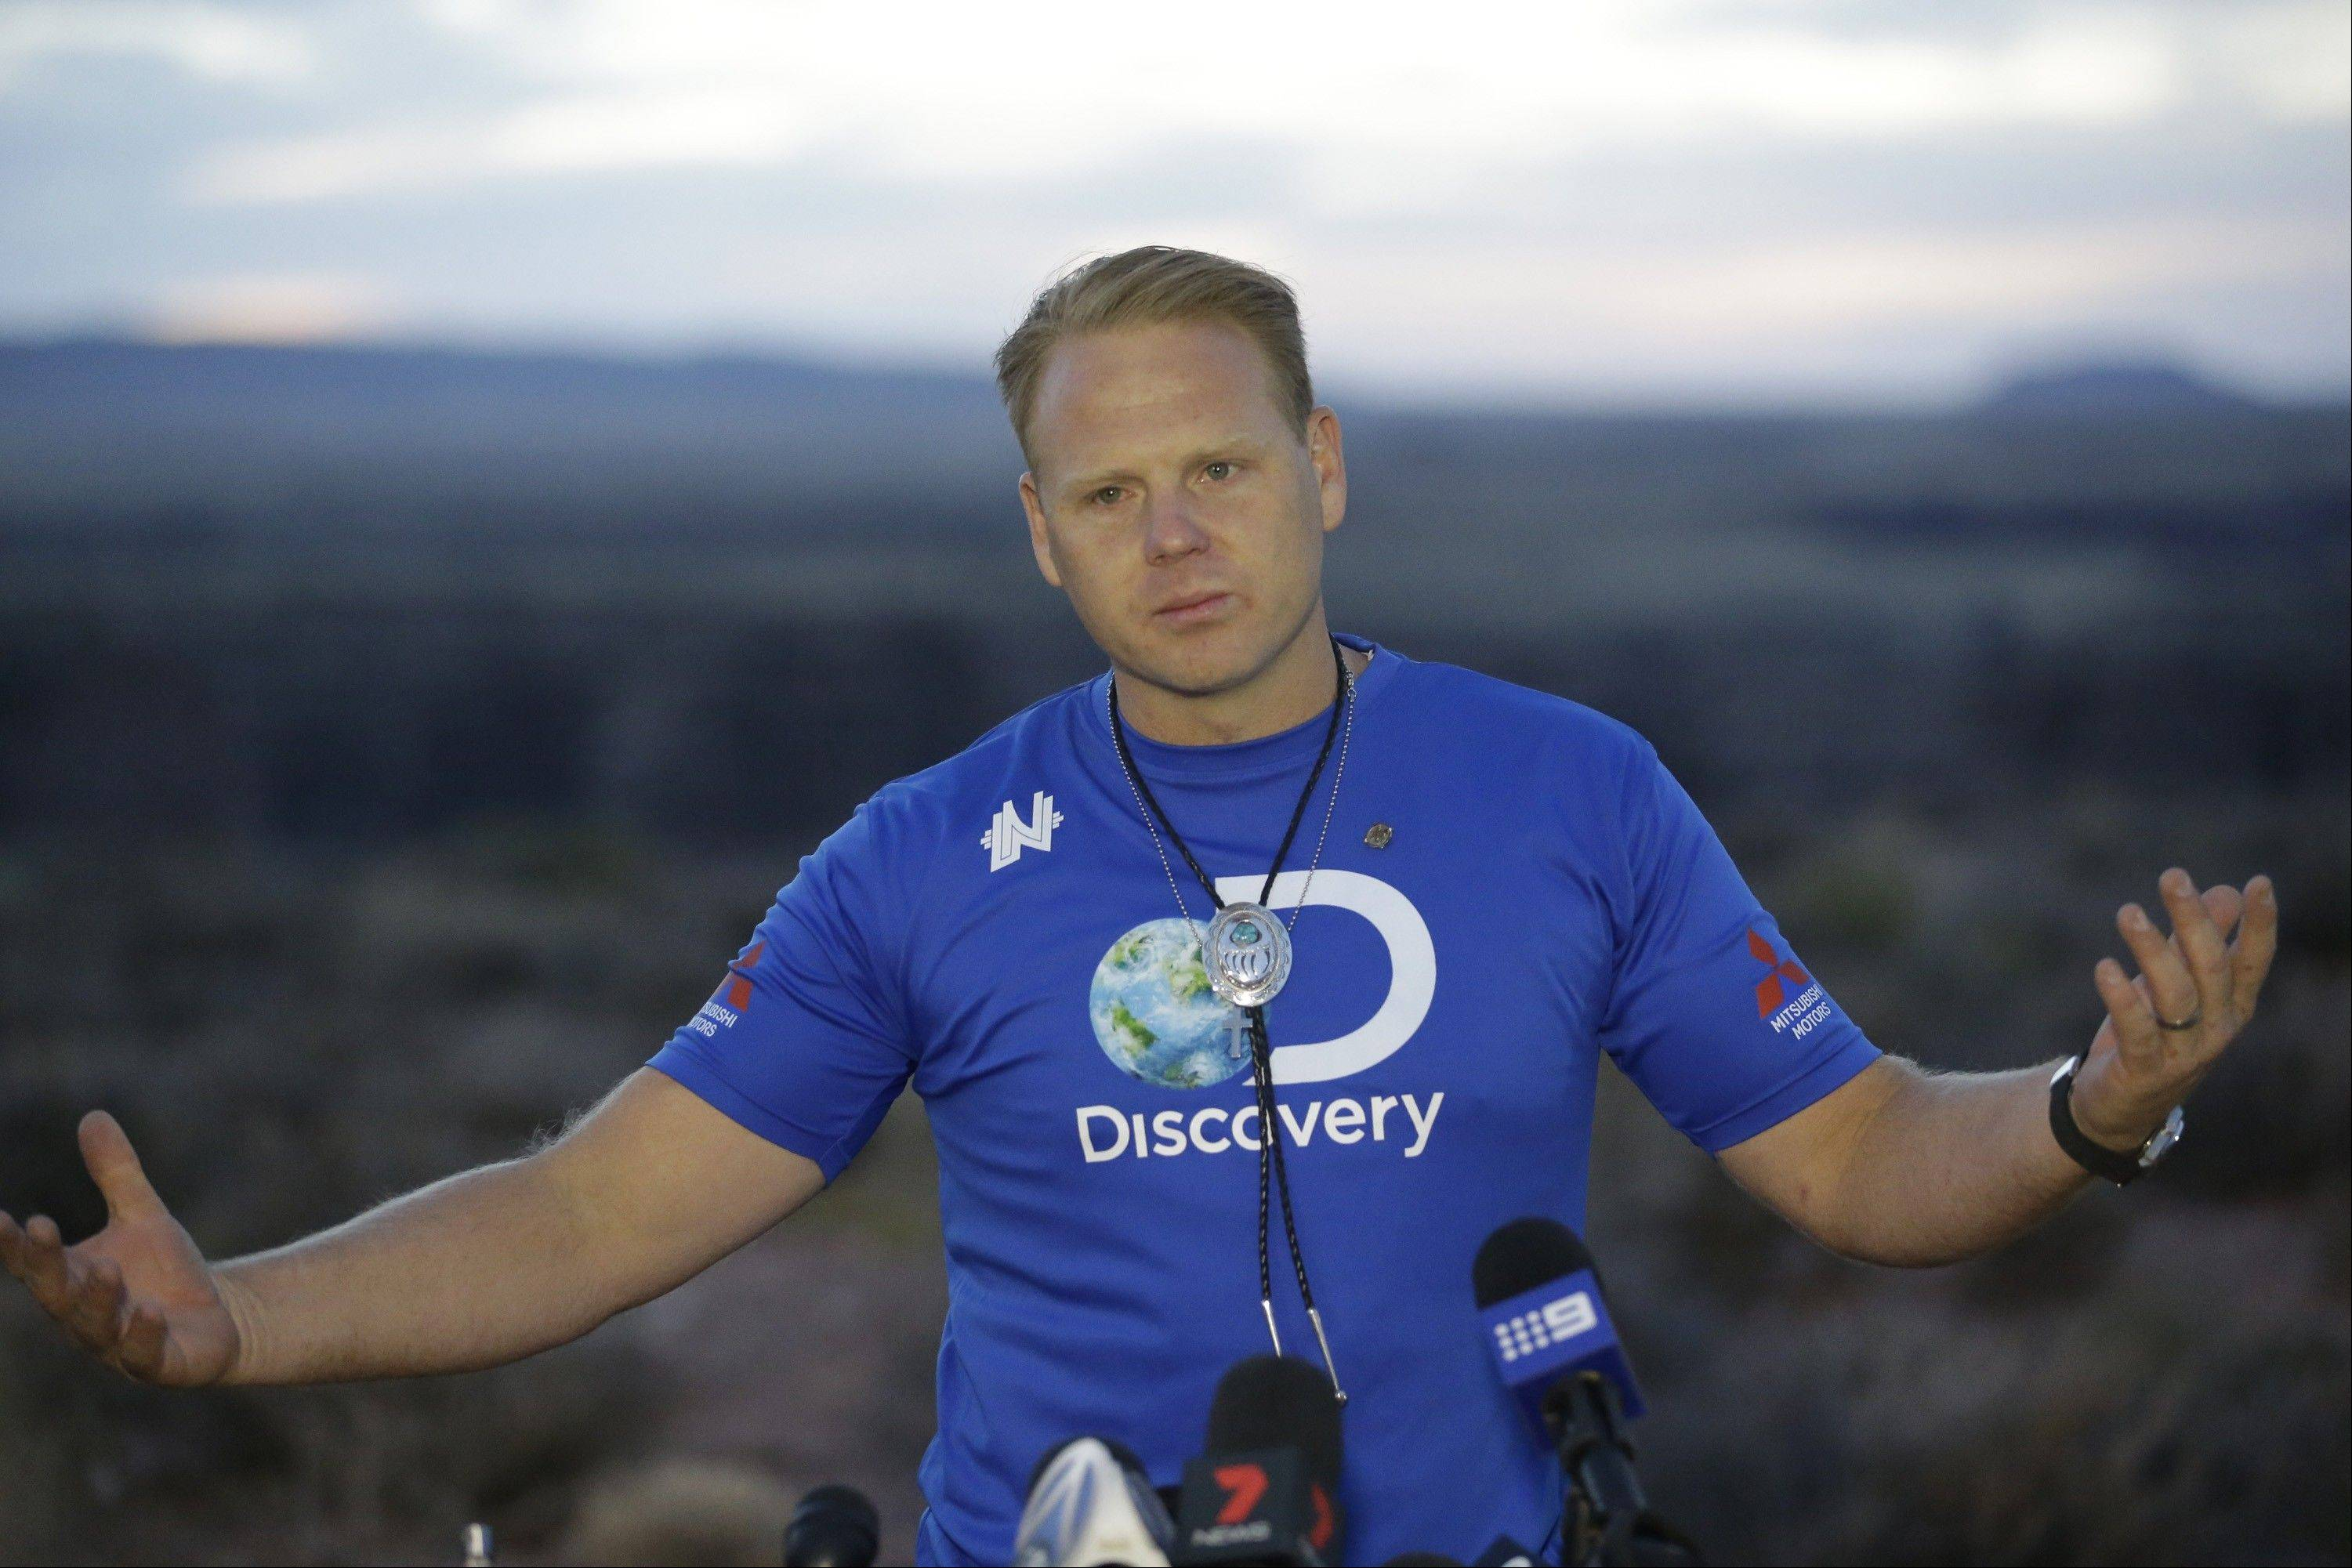 Daredevil Nik Wallenda smiles during a news conference after crossing a tightrope 1,500 feet above the Little Colorado River Gorge Sunday, June 23, 2013, on the Navajo reservation outside the boundaries of Grand Canyon National Park. Wallenda completed the tightrope walk that took him a quarter mile across the gorge in just more than 22 minutes.